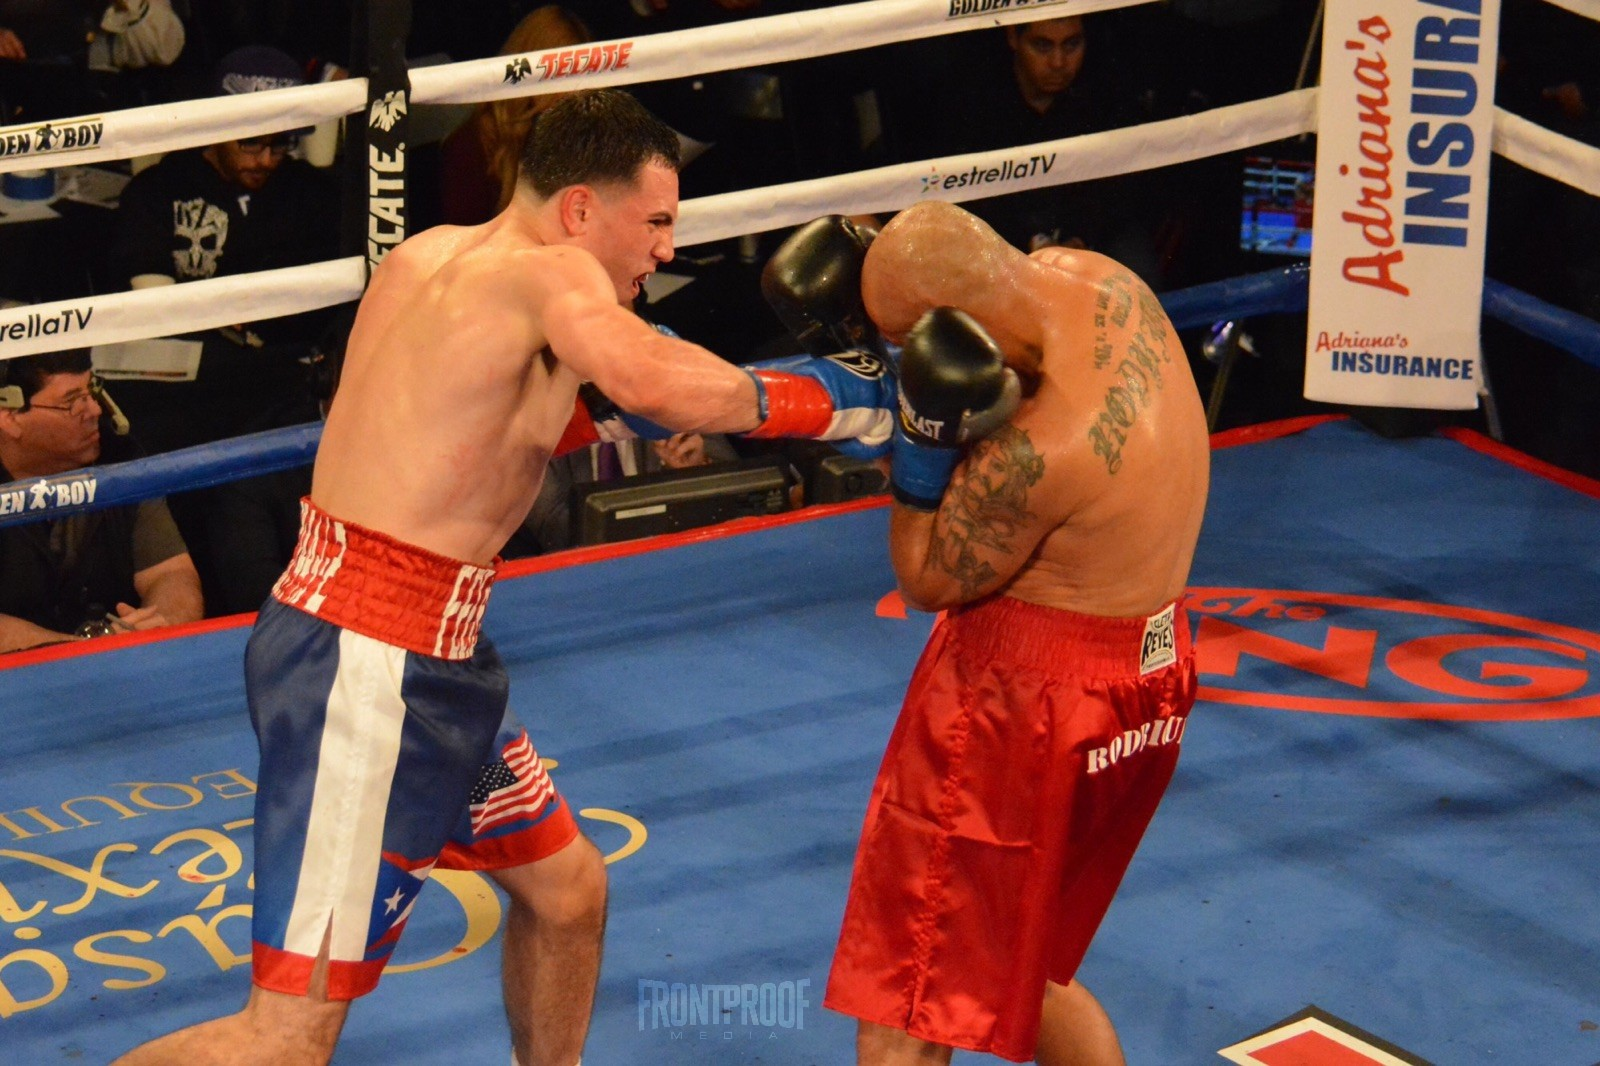 Luis Feliciano, a Marquette University graduate, connects with an overhand right. Photo: Cynthia Saldaña/Frontproof Media